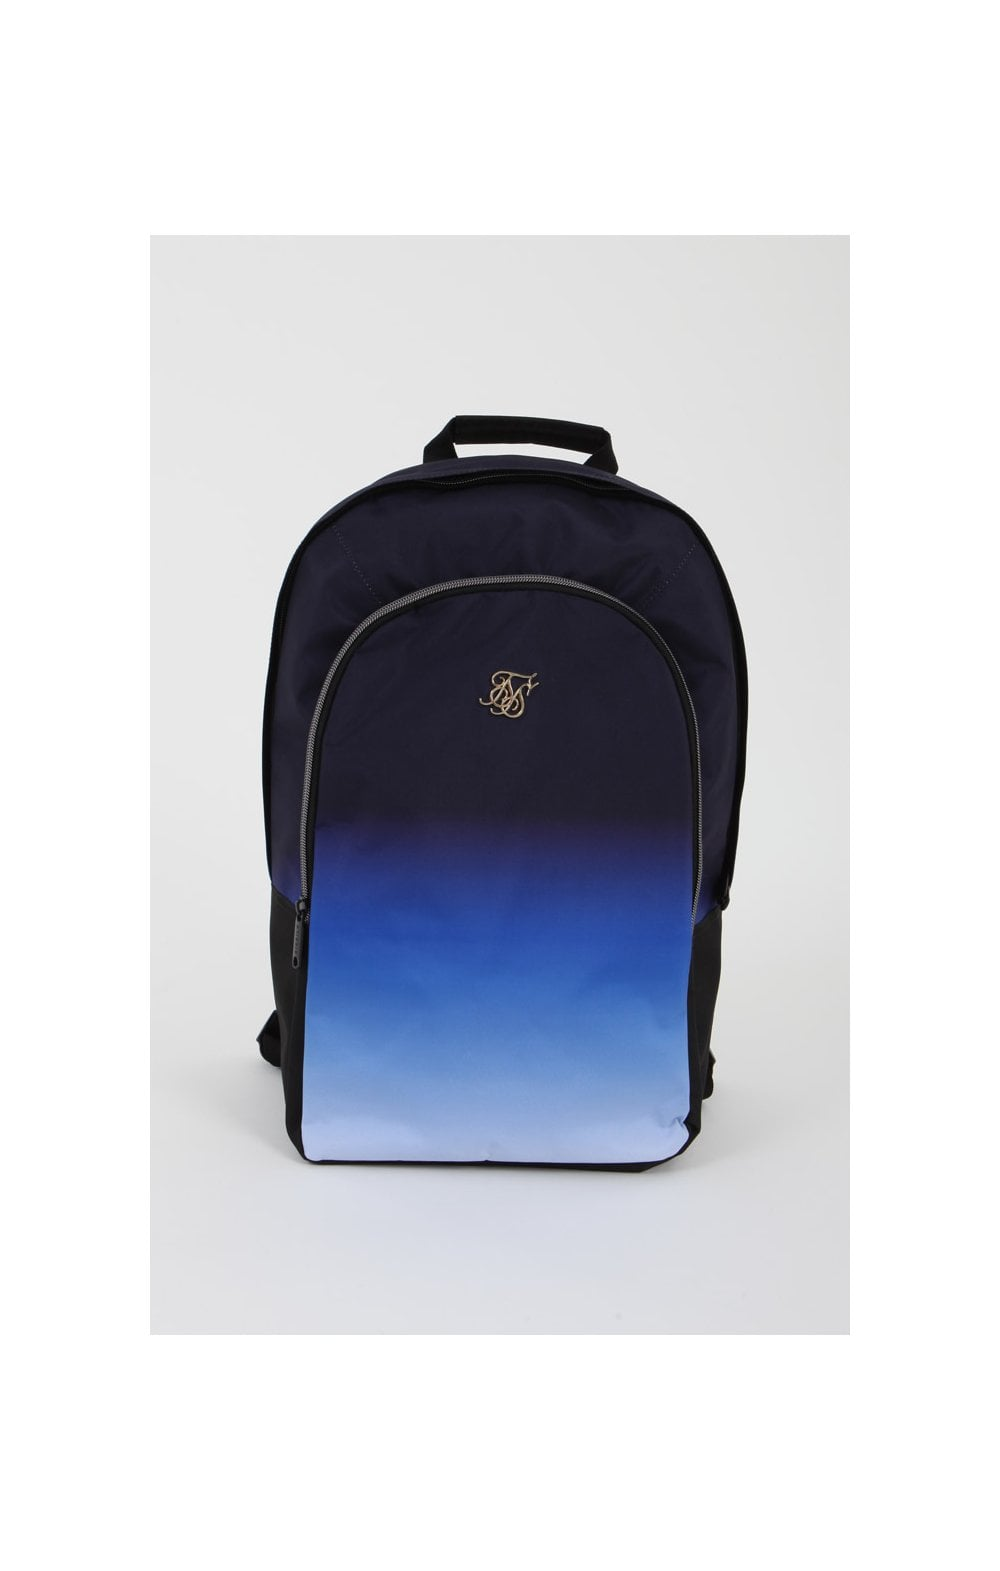 SikSilk Fade Bacpack -Black, Blue & White